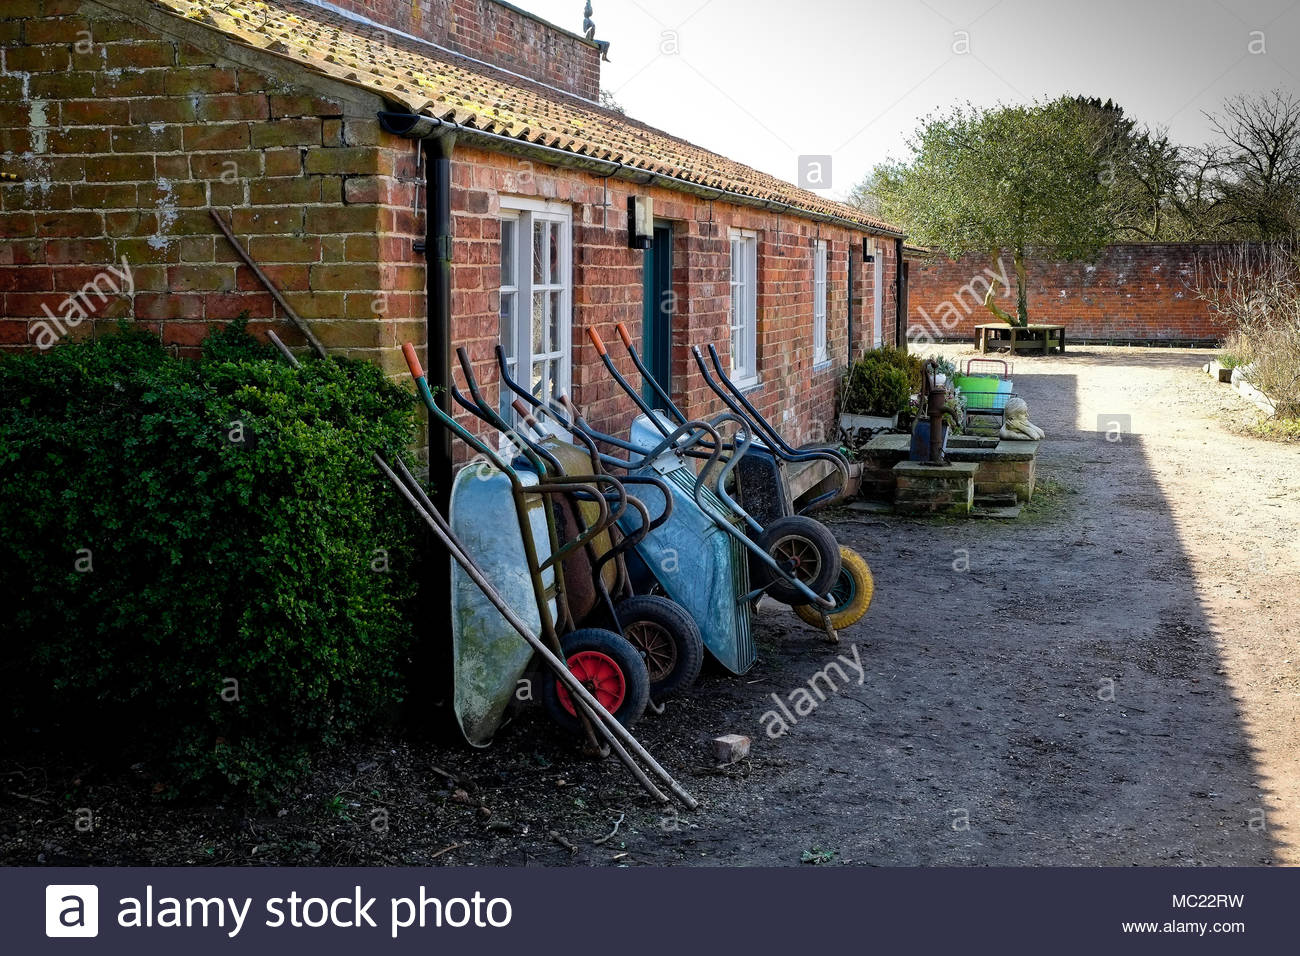 Gardeners wheelbarrows, Lincolnshire, UK. - Stock Image